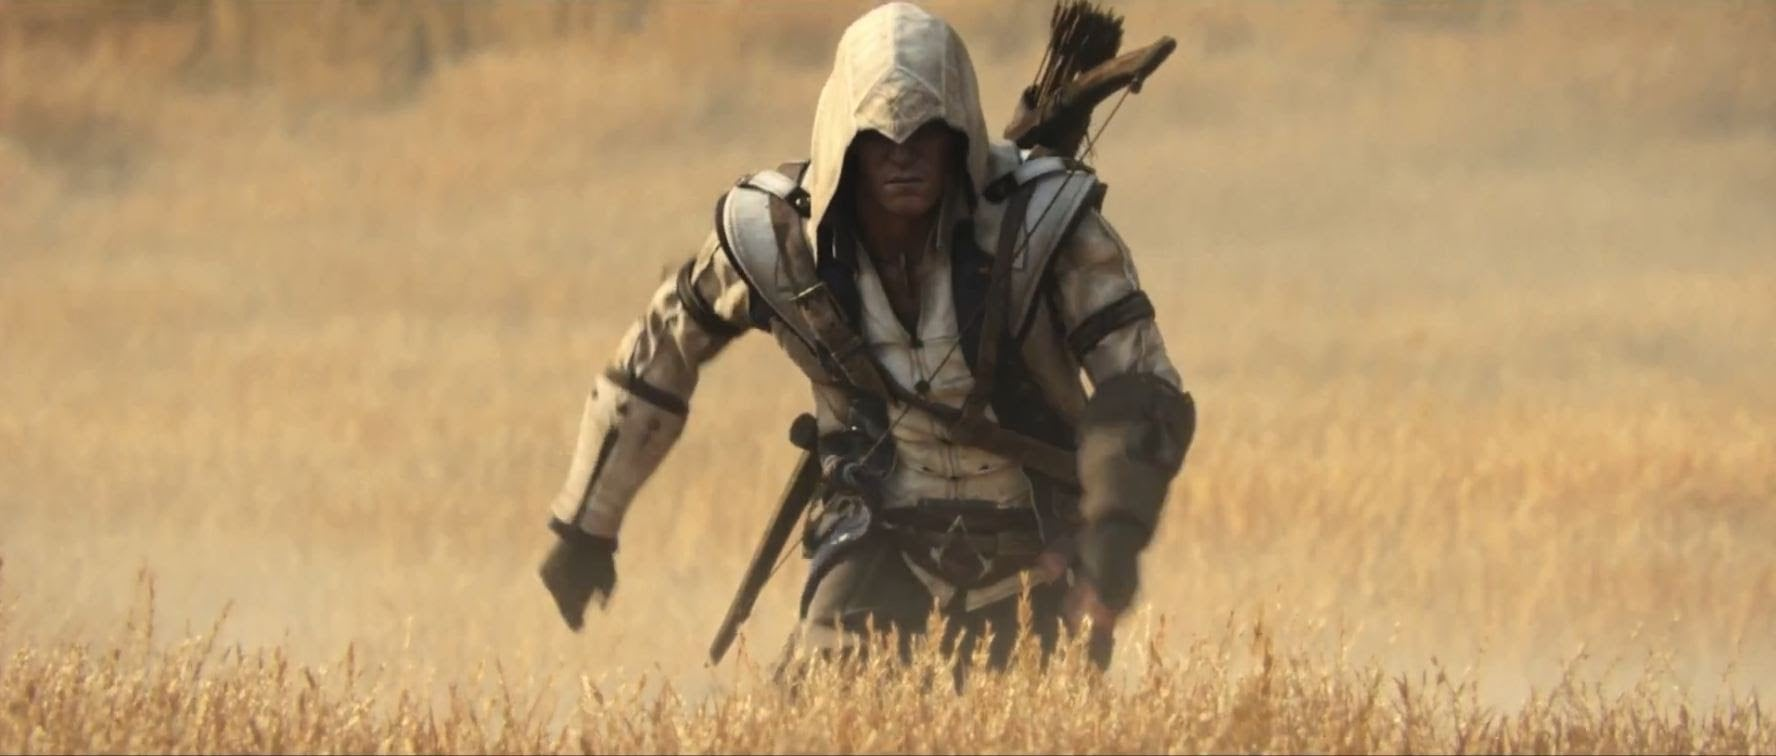 Assassins Creed 3 Bedava